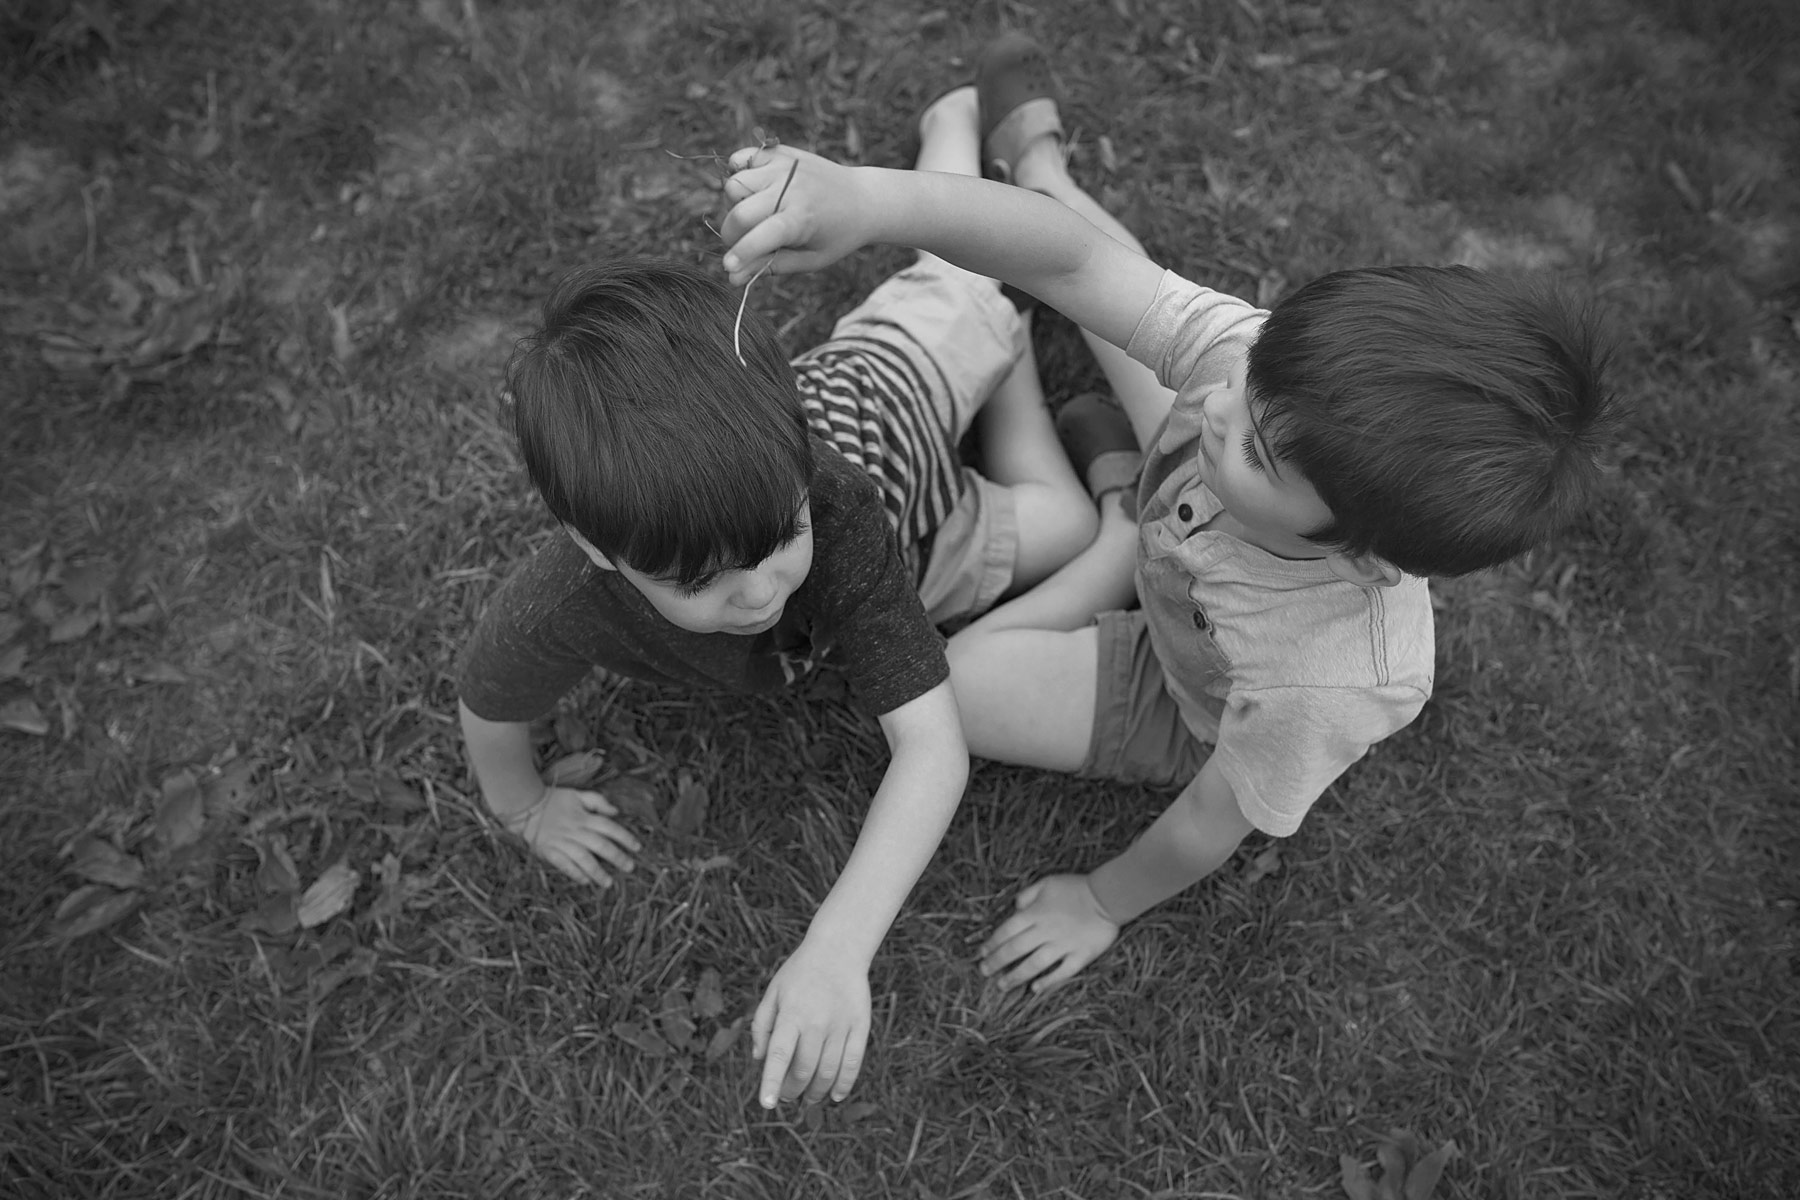 black and white of boy putting grass on brother's head